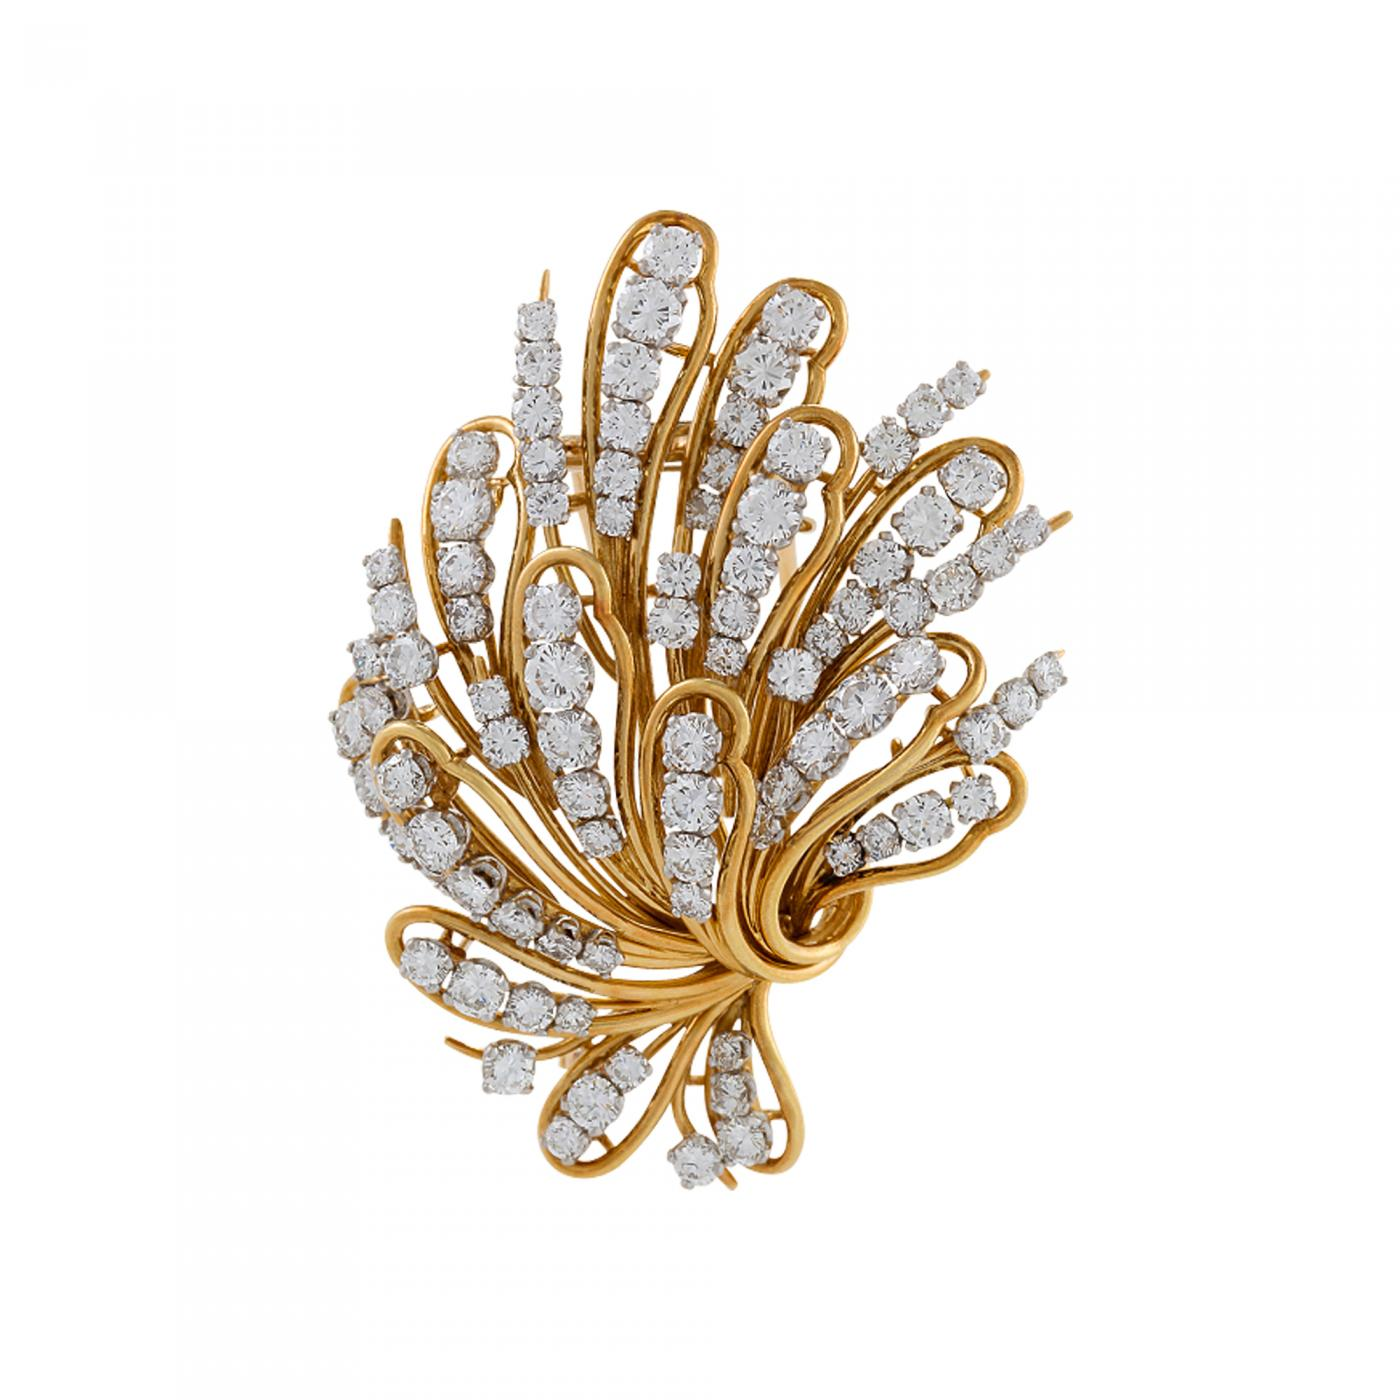 brooch online store r b jewelry fashionable at kundan india g in low buy jewellery prices amazon br dp